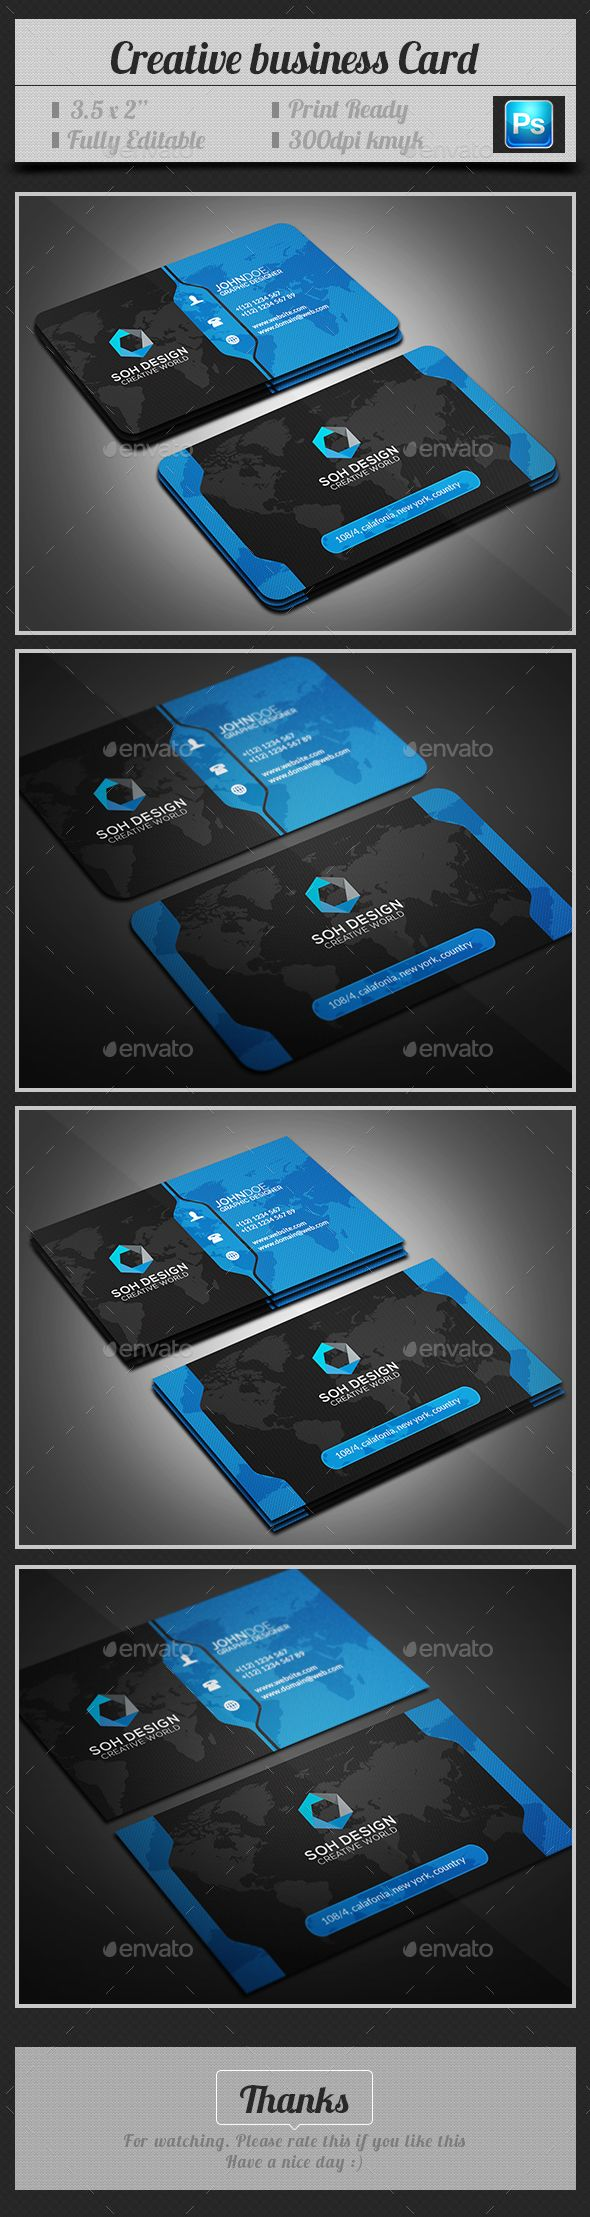 Creative Business Card Template PSD #design Download: http://graphicriver.net/item/creative-business-card/14428977?ref=ksioks